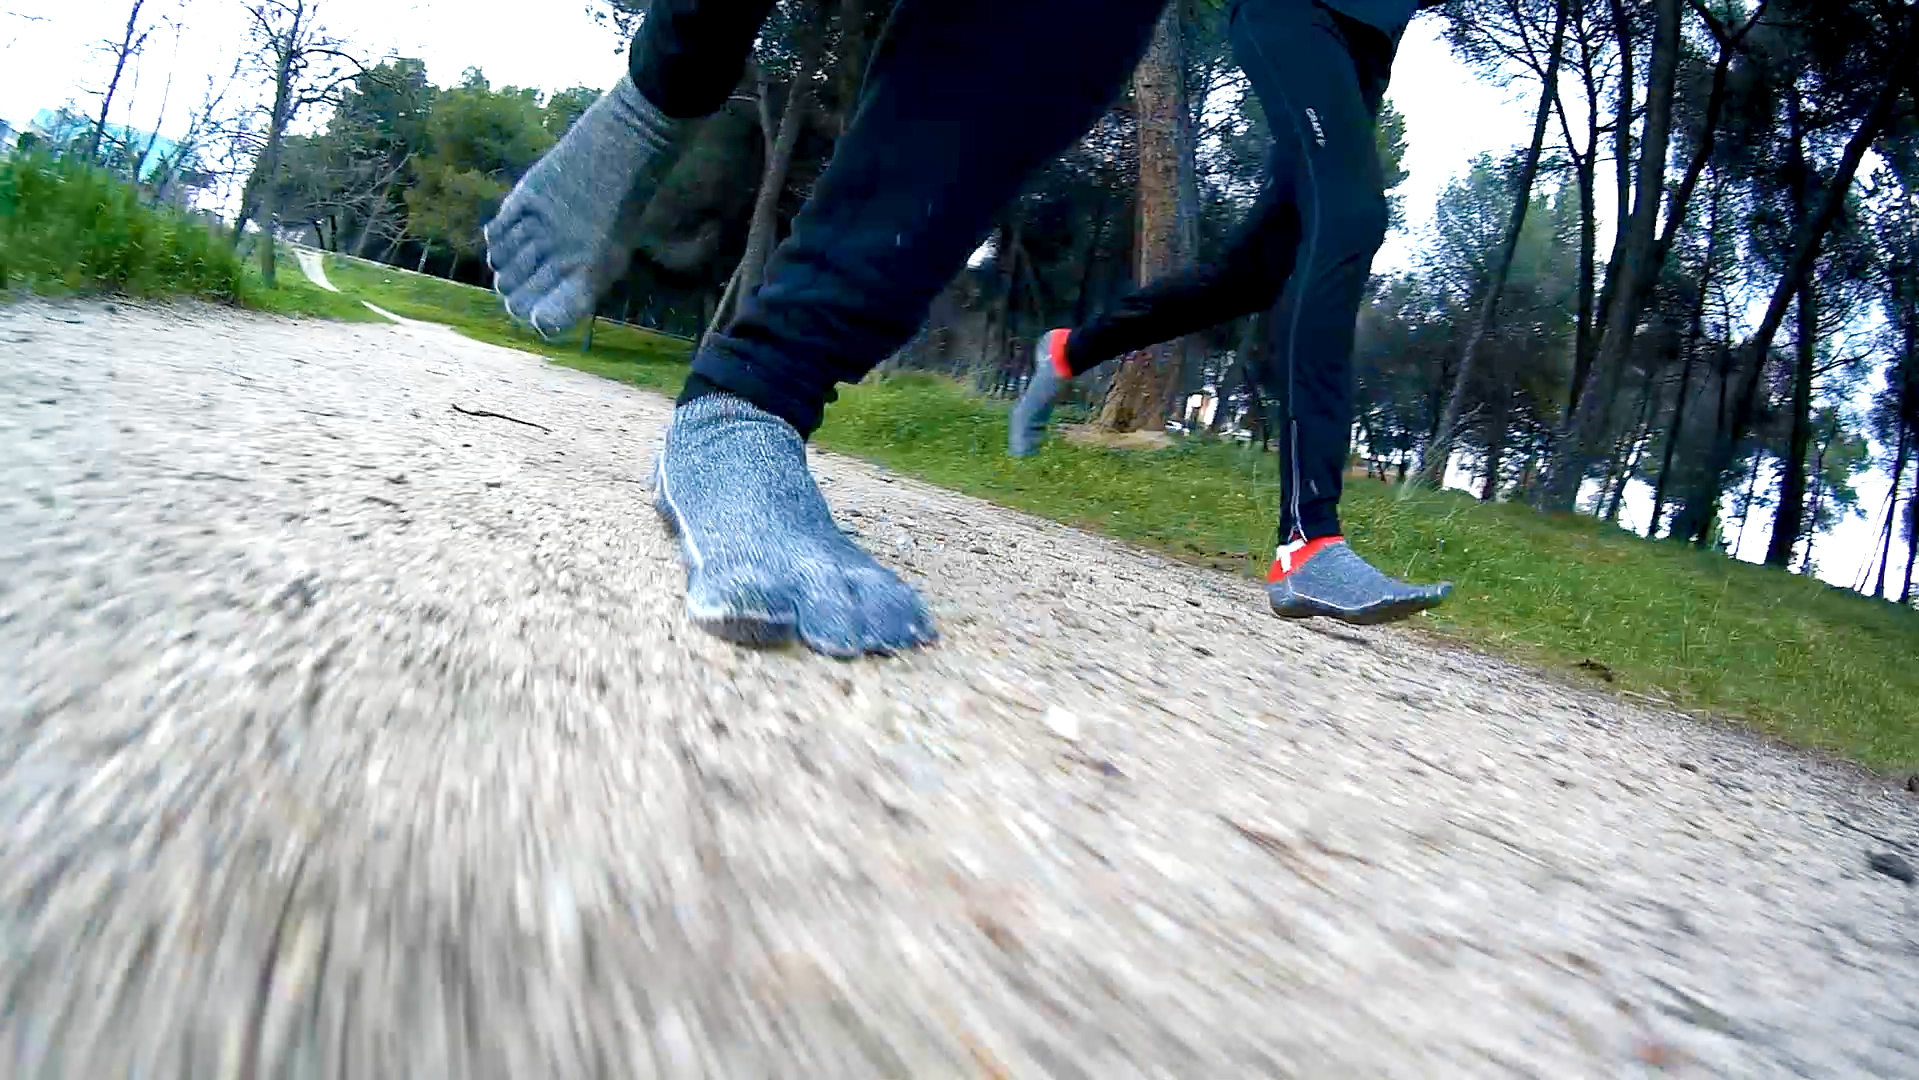 Correr descalzo con calcetines FYF - Free Your Feet